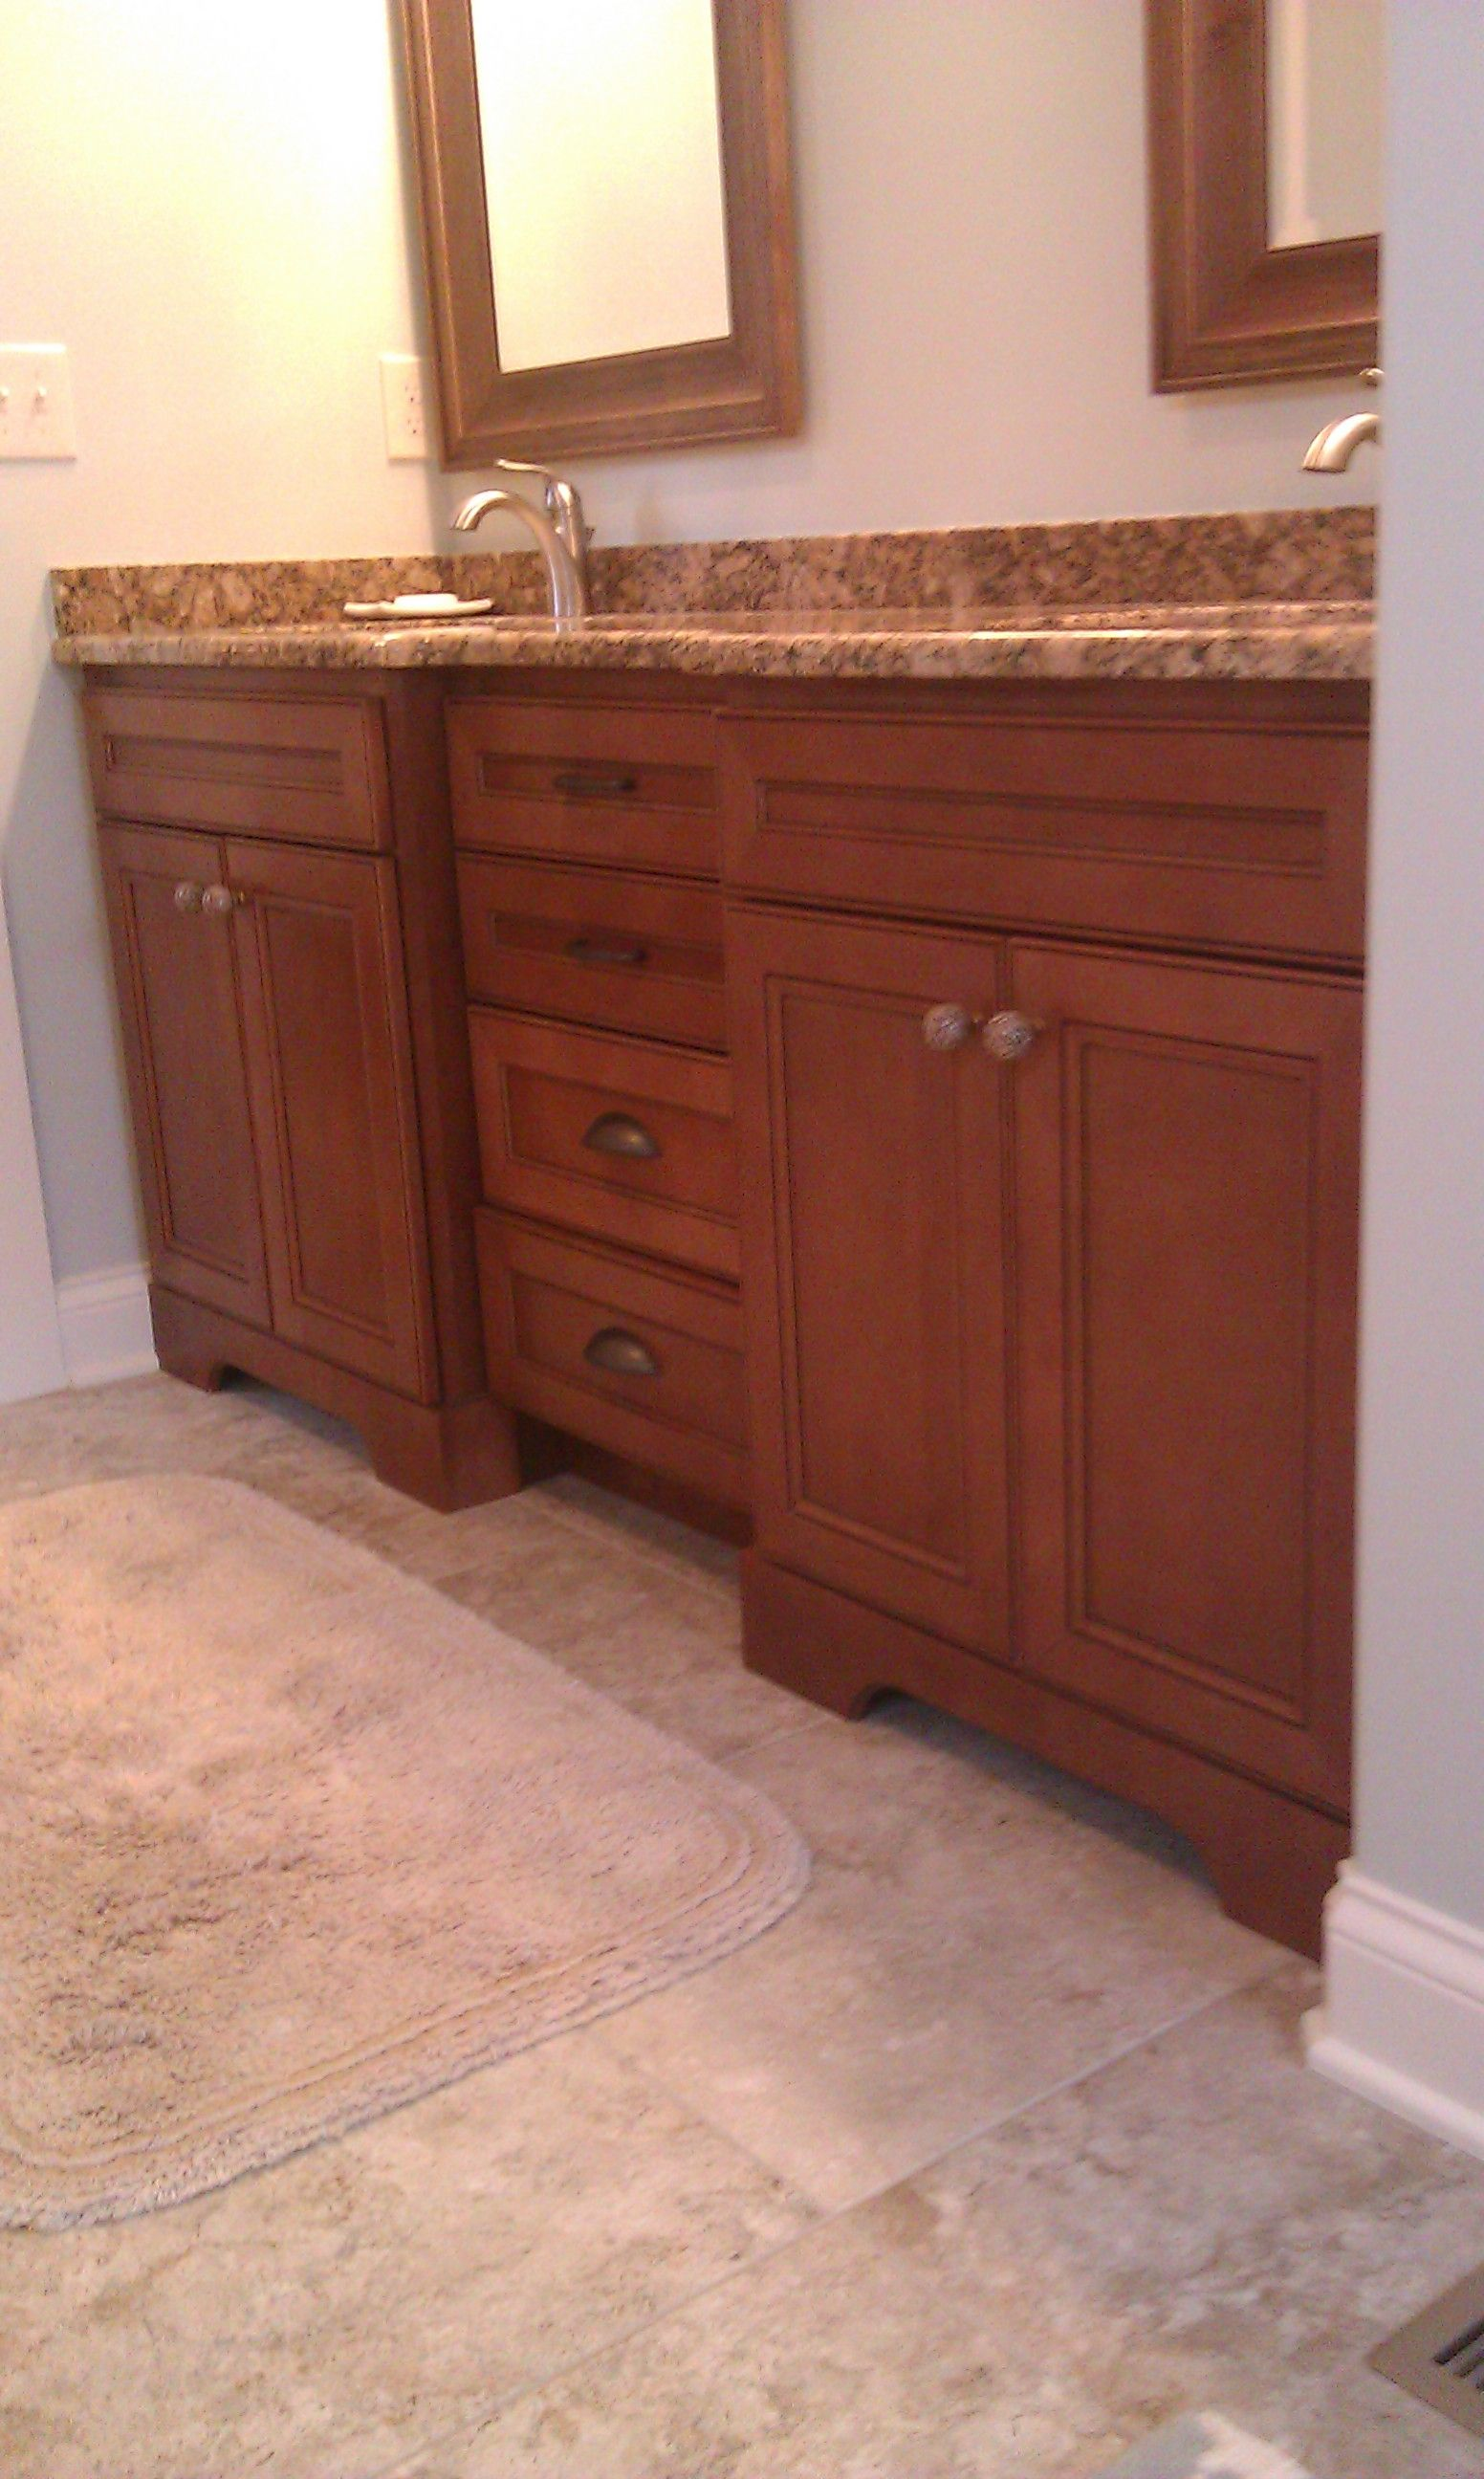 Master Bath Vanity Cabinet Homecrest Cabinetry Eastport Maple - 96 bathroom vanity cabinets for bathroom decor ideas